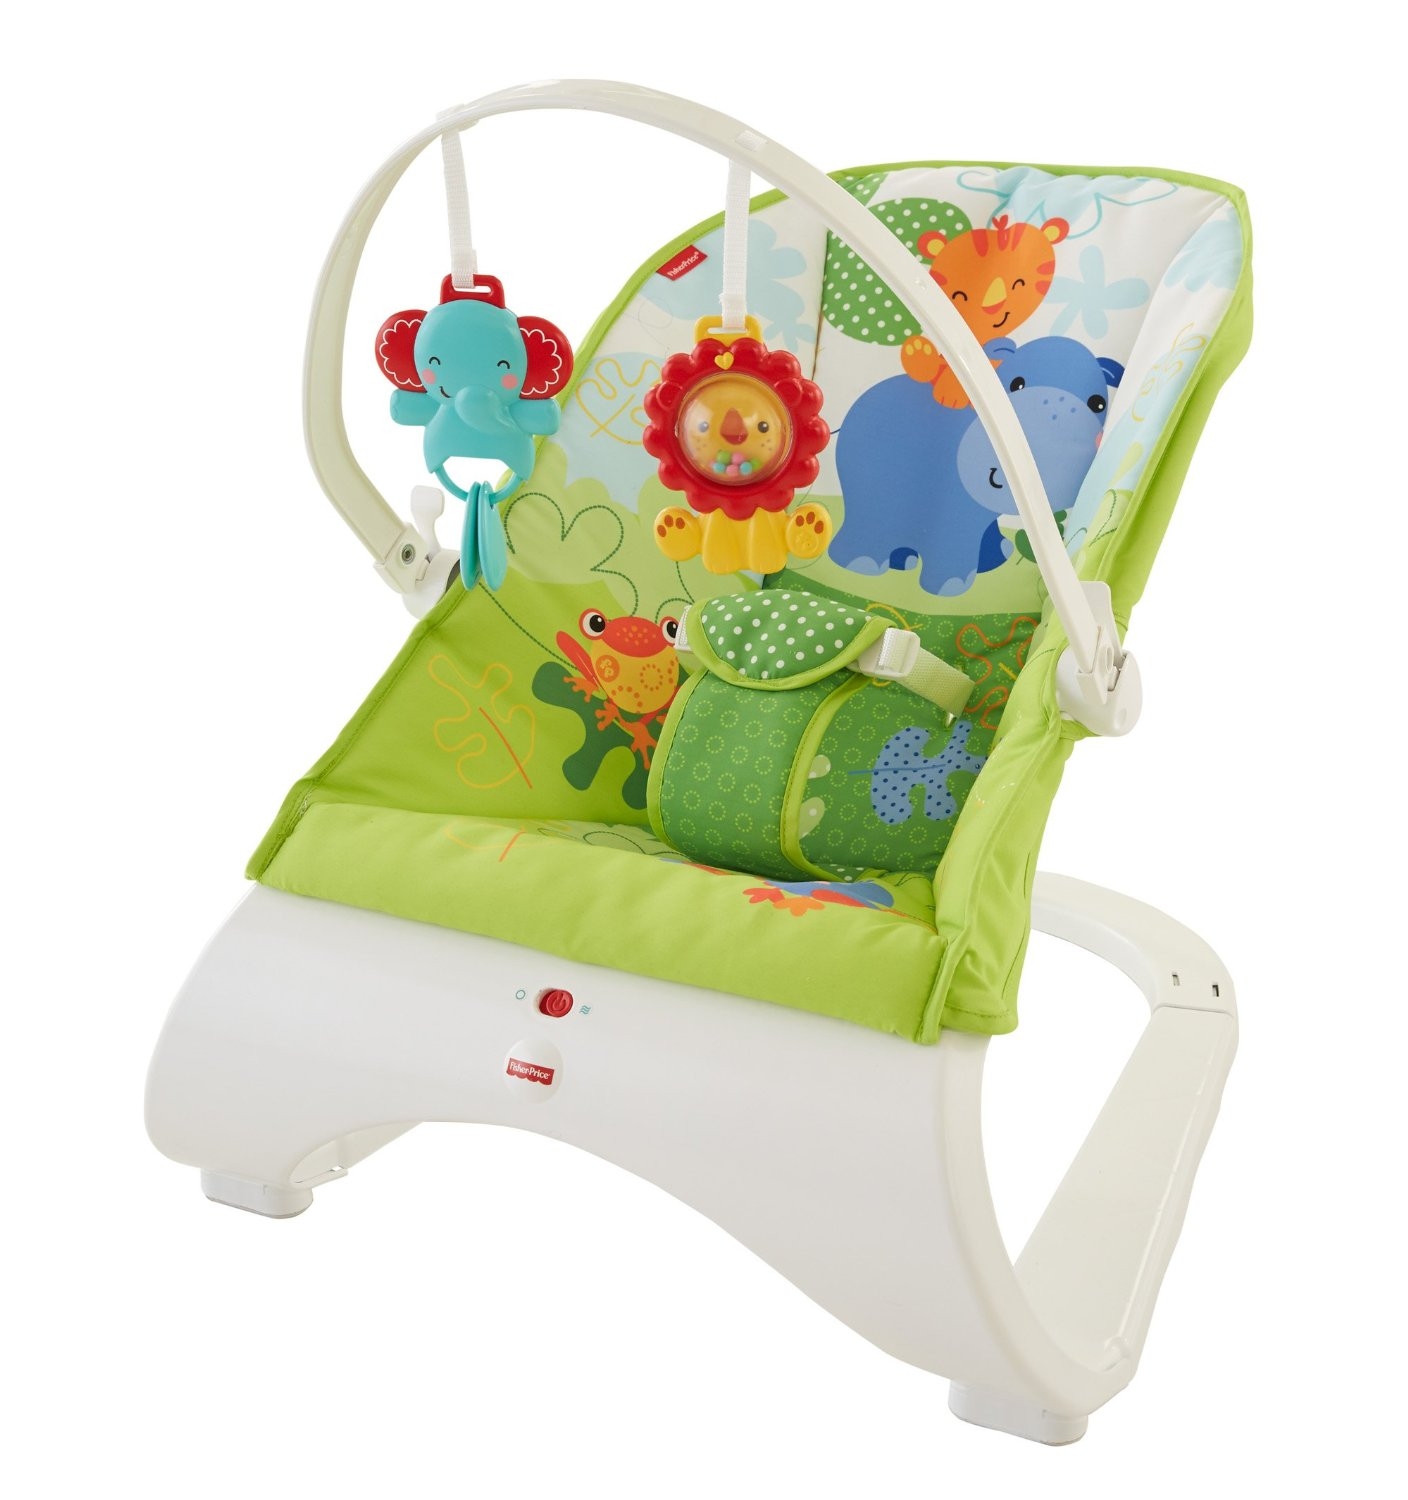 Šūpuļkrēsliņš Fisher Price Rainforest Friends Comfort Curve Bouncer CJJ79